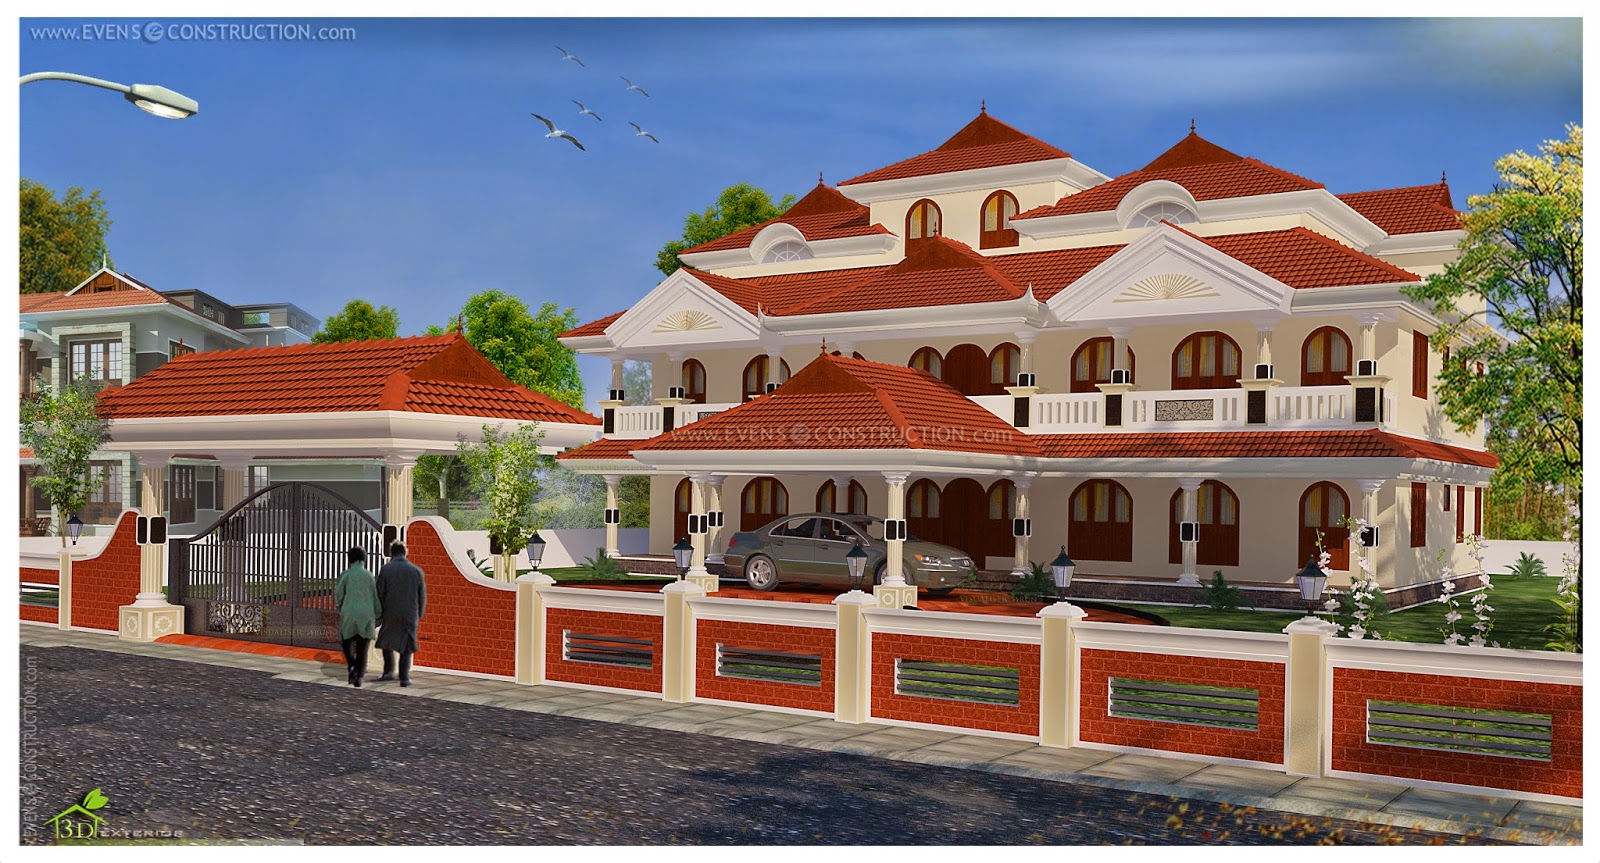 Evens Construction Pvt Ltd Big Luxury Home Design